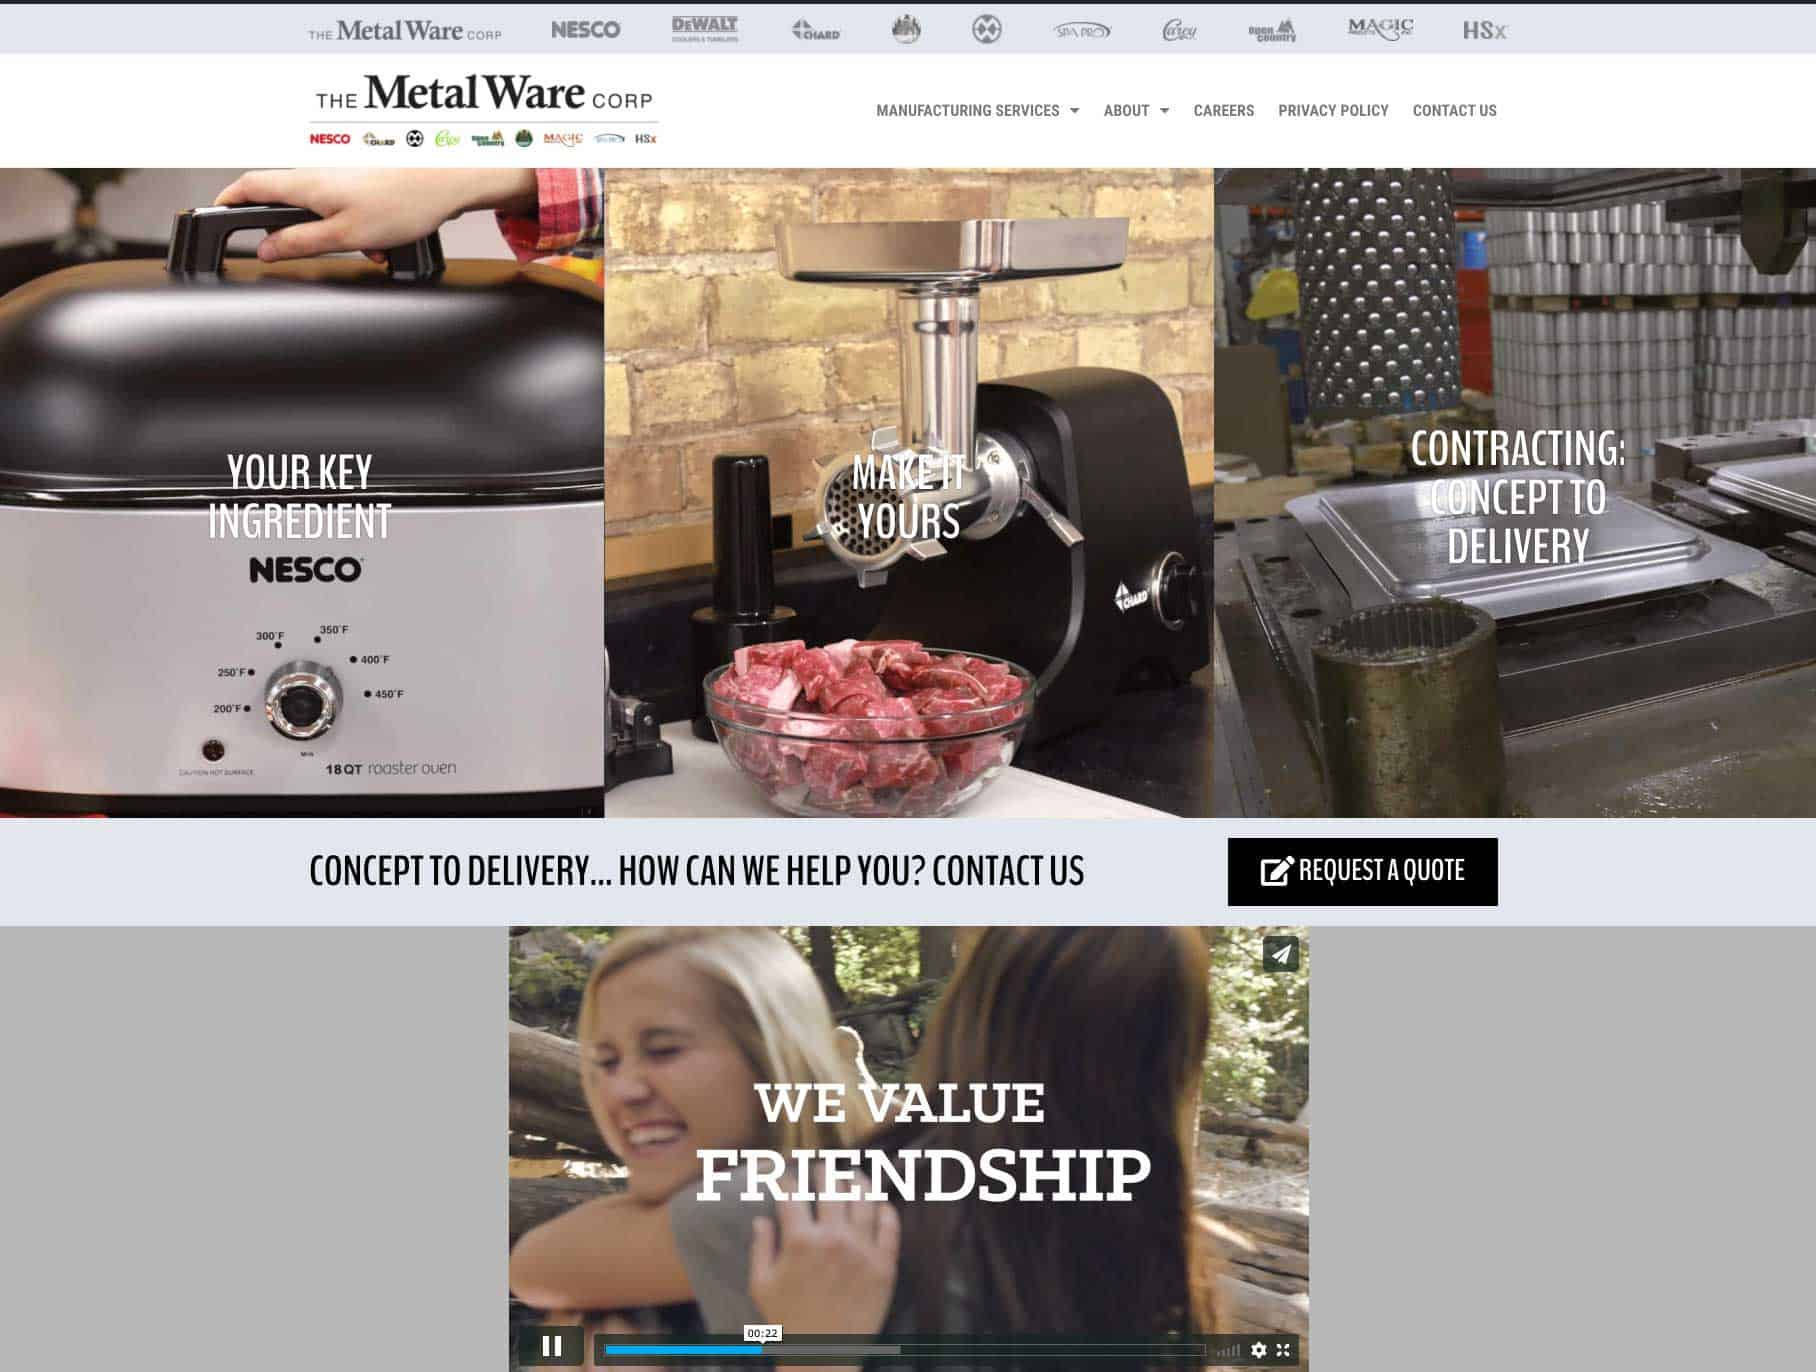 Metal Ware updates its website to highlight contract manufacturing